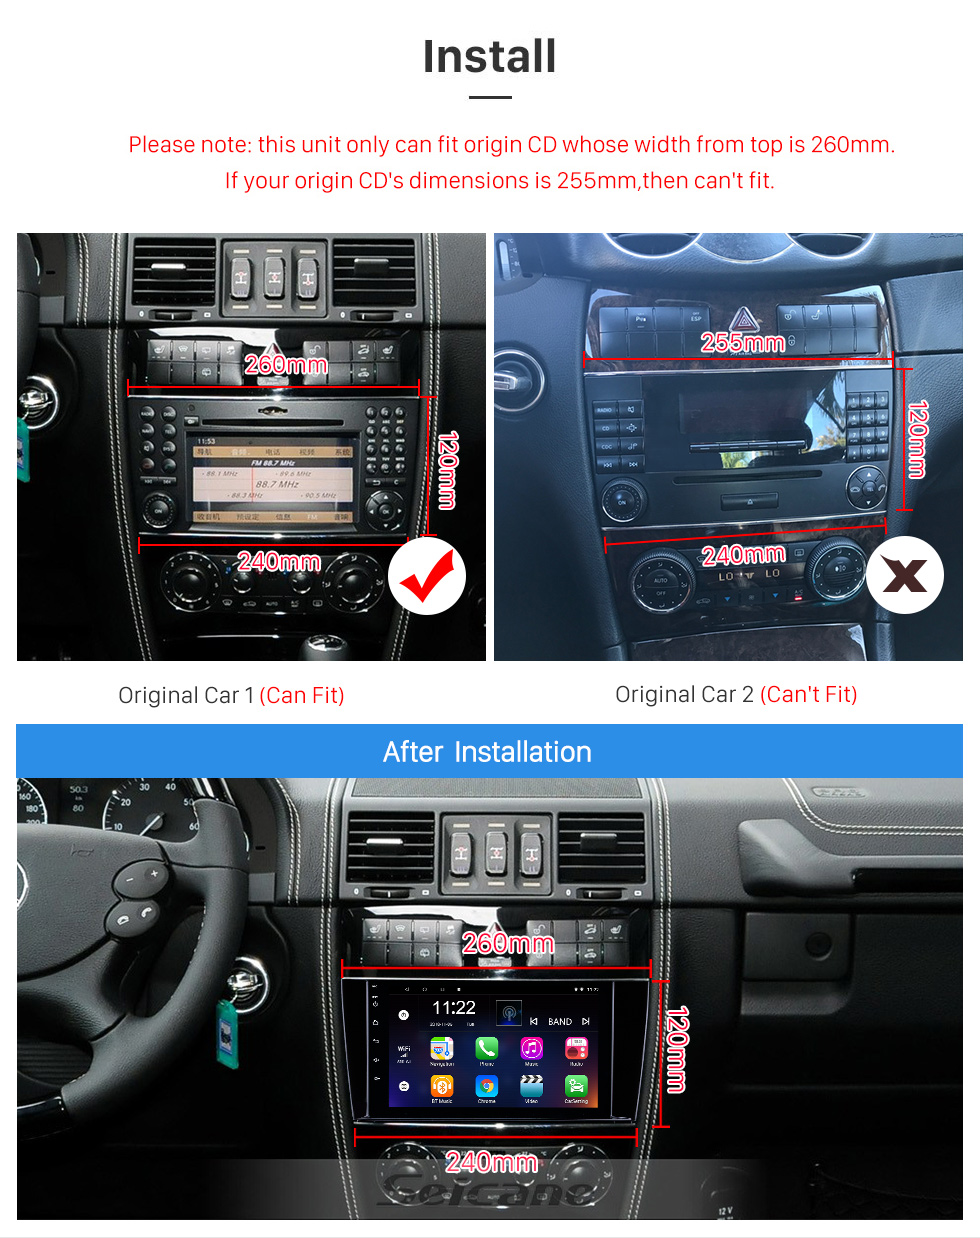 Seicane 8 inch Android 8.1 GPS Navigation Radio for 2005-2007 Mercedes-Benz G Class W467 G550 G500 G400 G320 G270 G55 with Bluetooth HD Touchscreen support Carplay DVR OBD